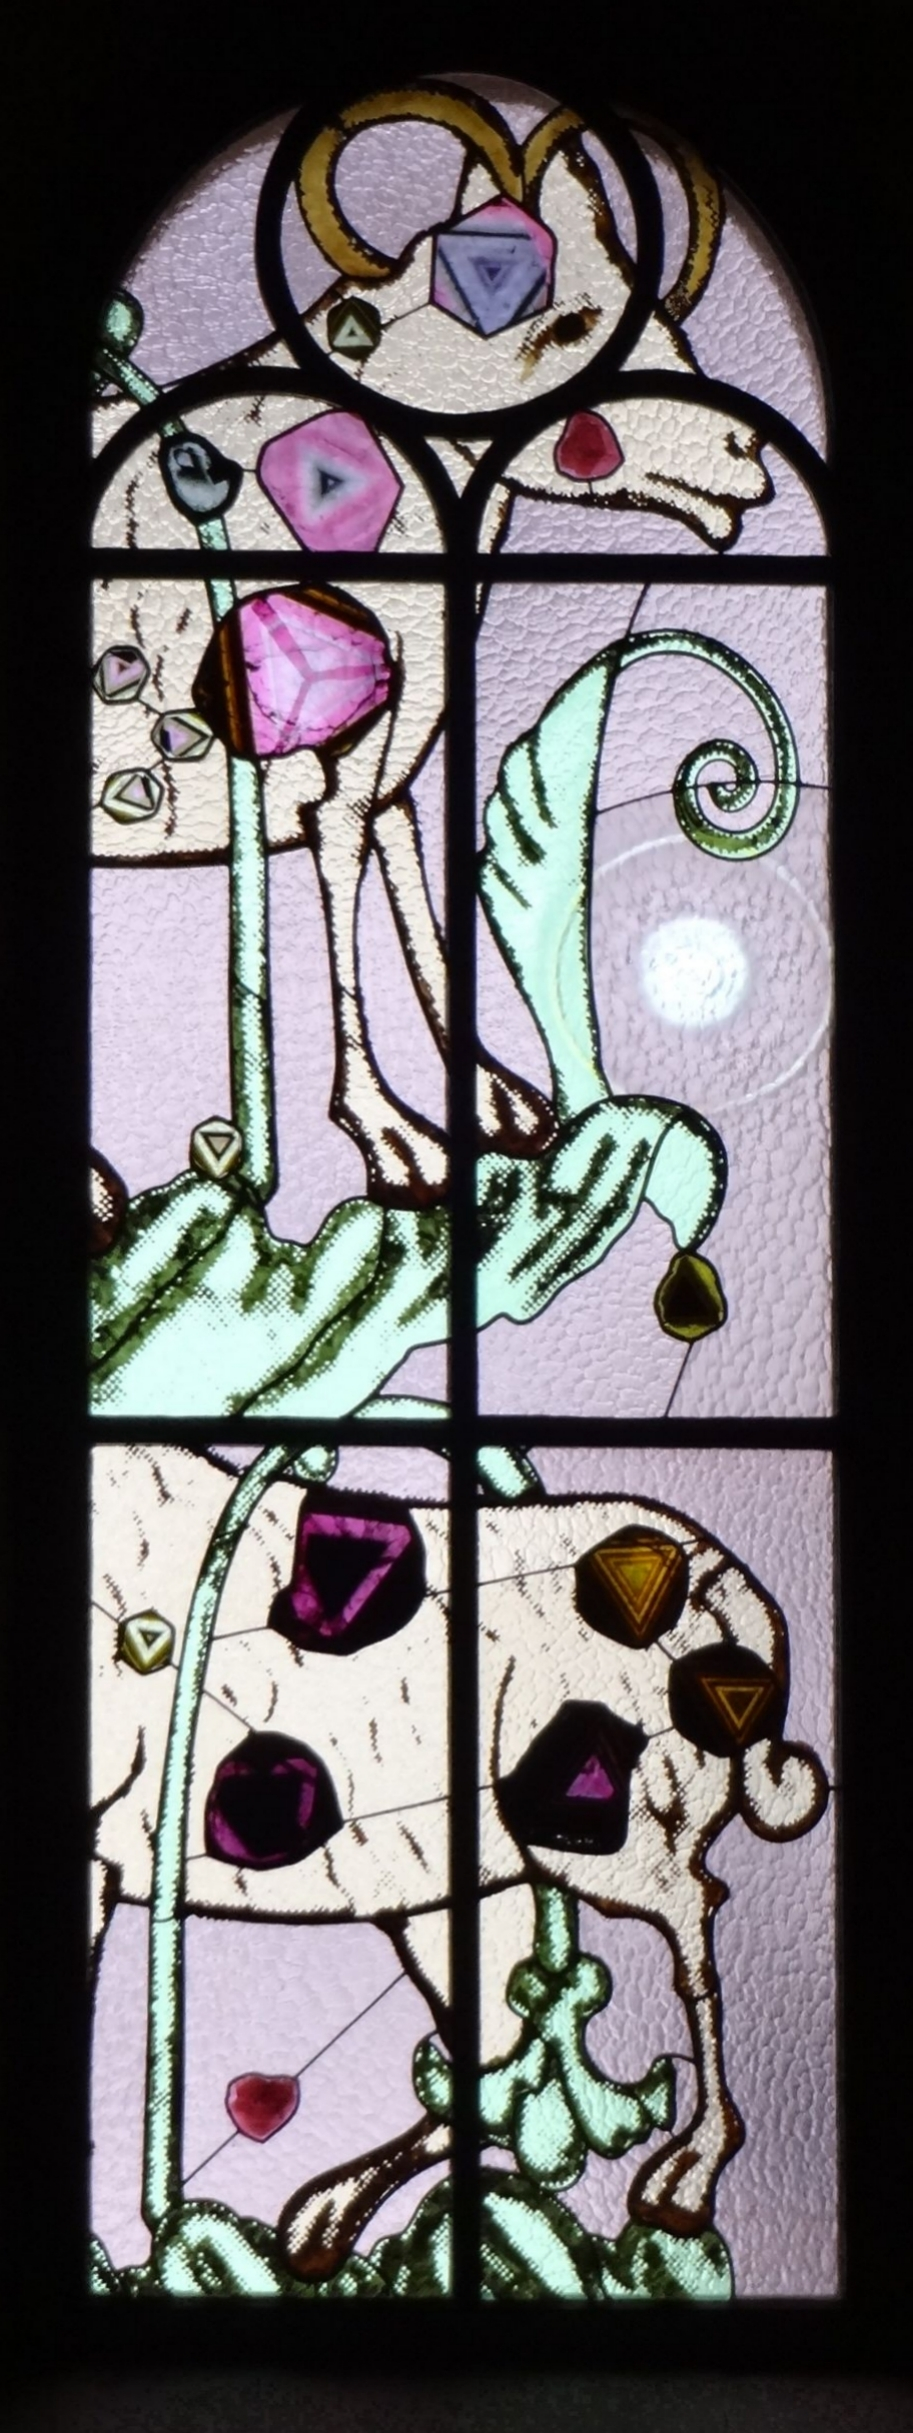 Zurich grossmu  nster stained glass window by sigmar polke scapegoat